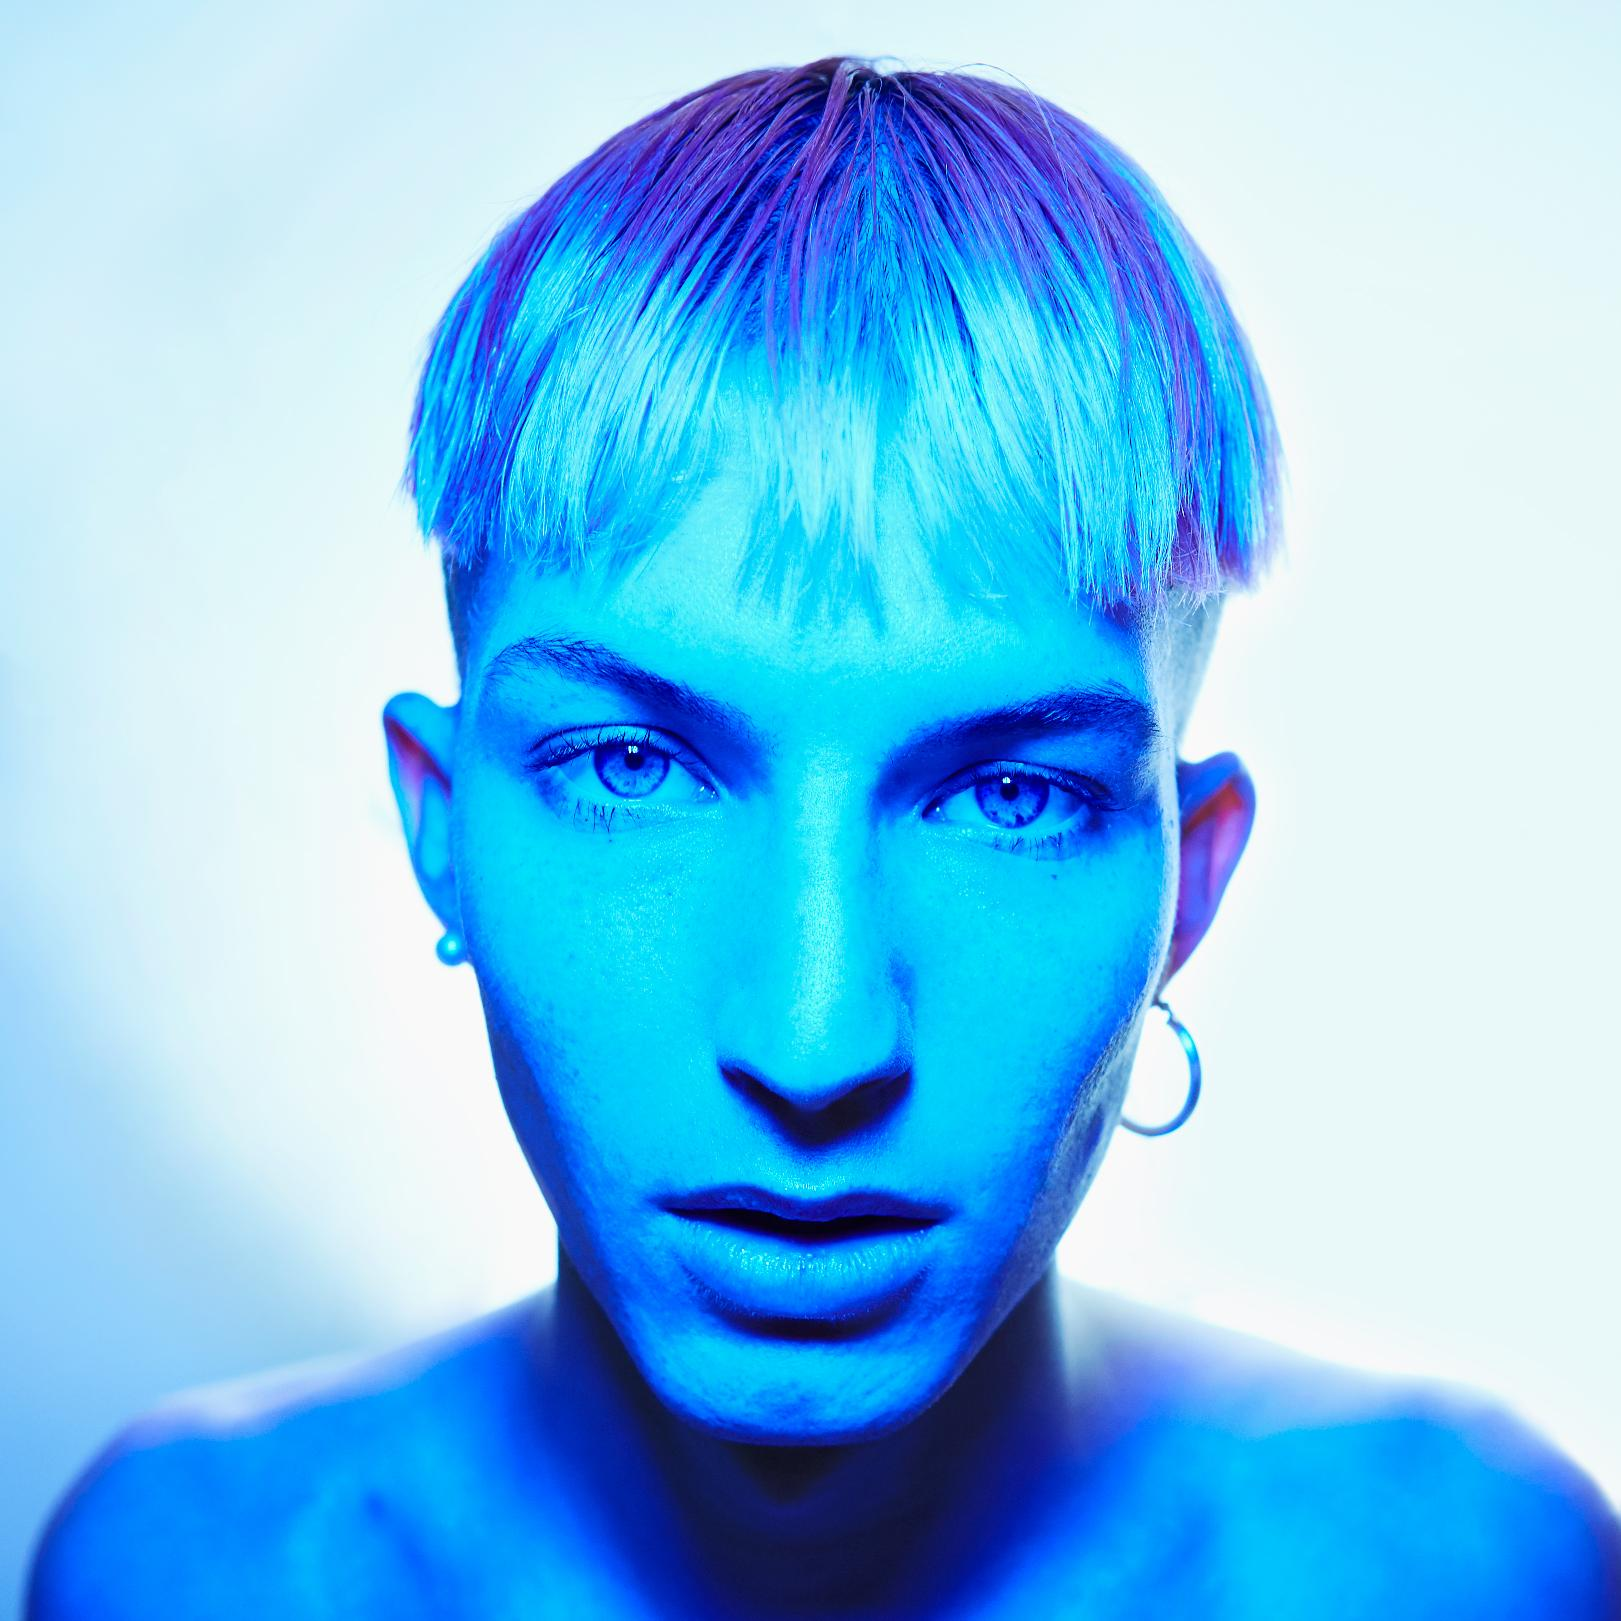 """Track by Track: Gus Dapperton, """"Where Polly People Go to Read"""""""